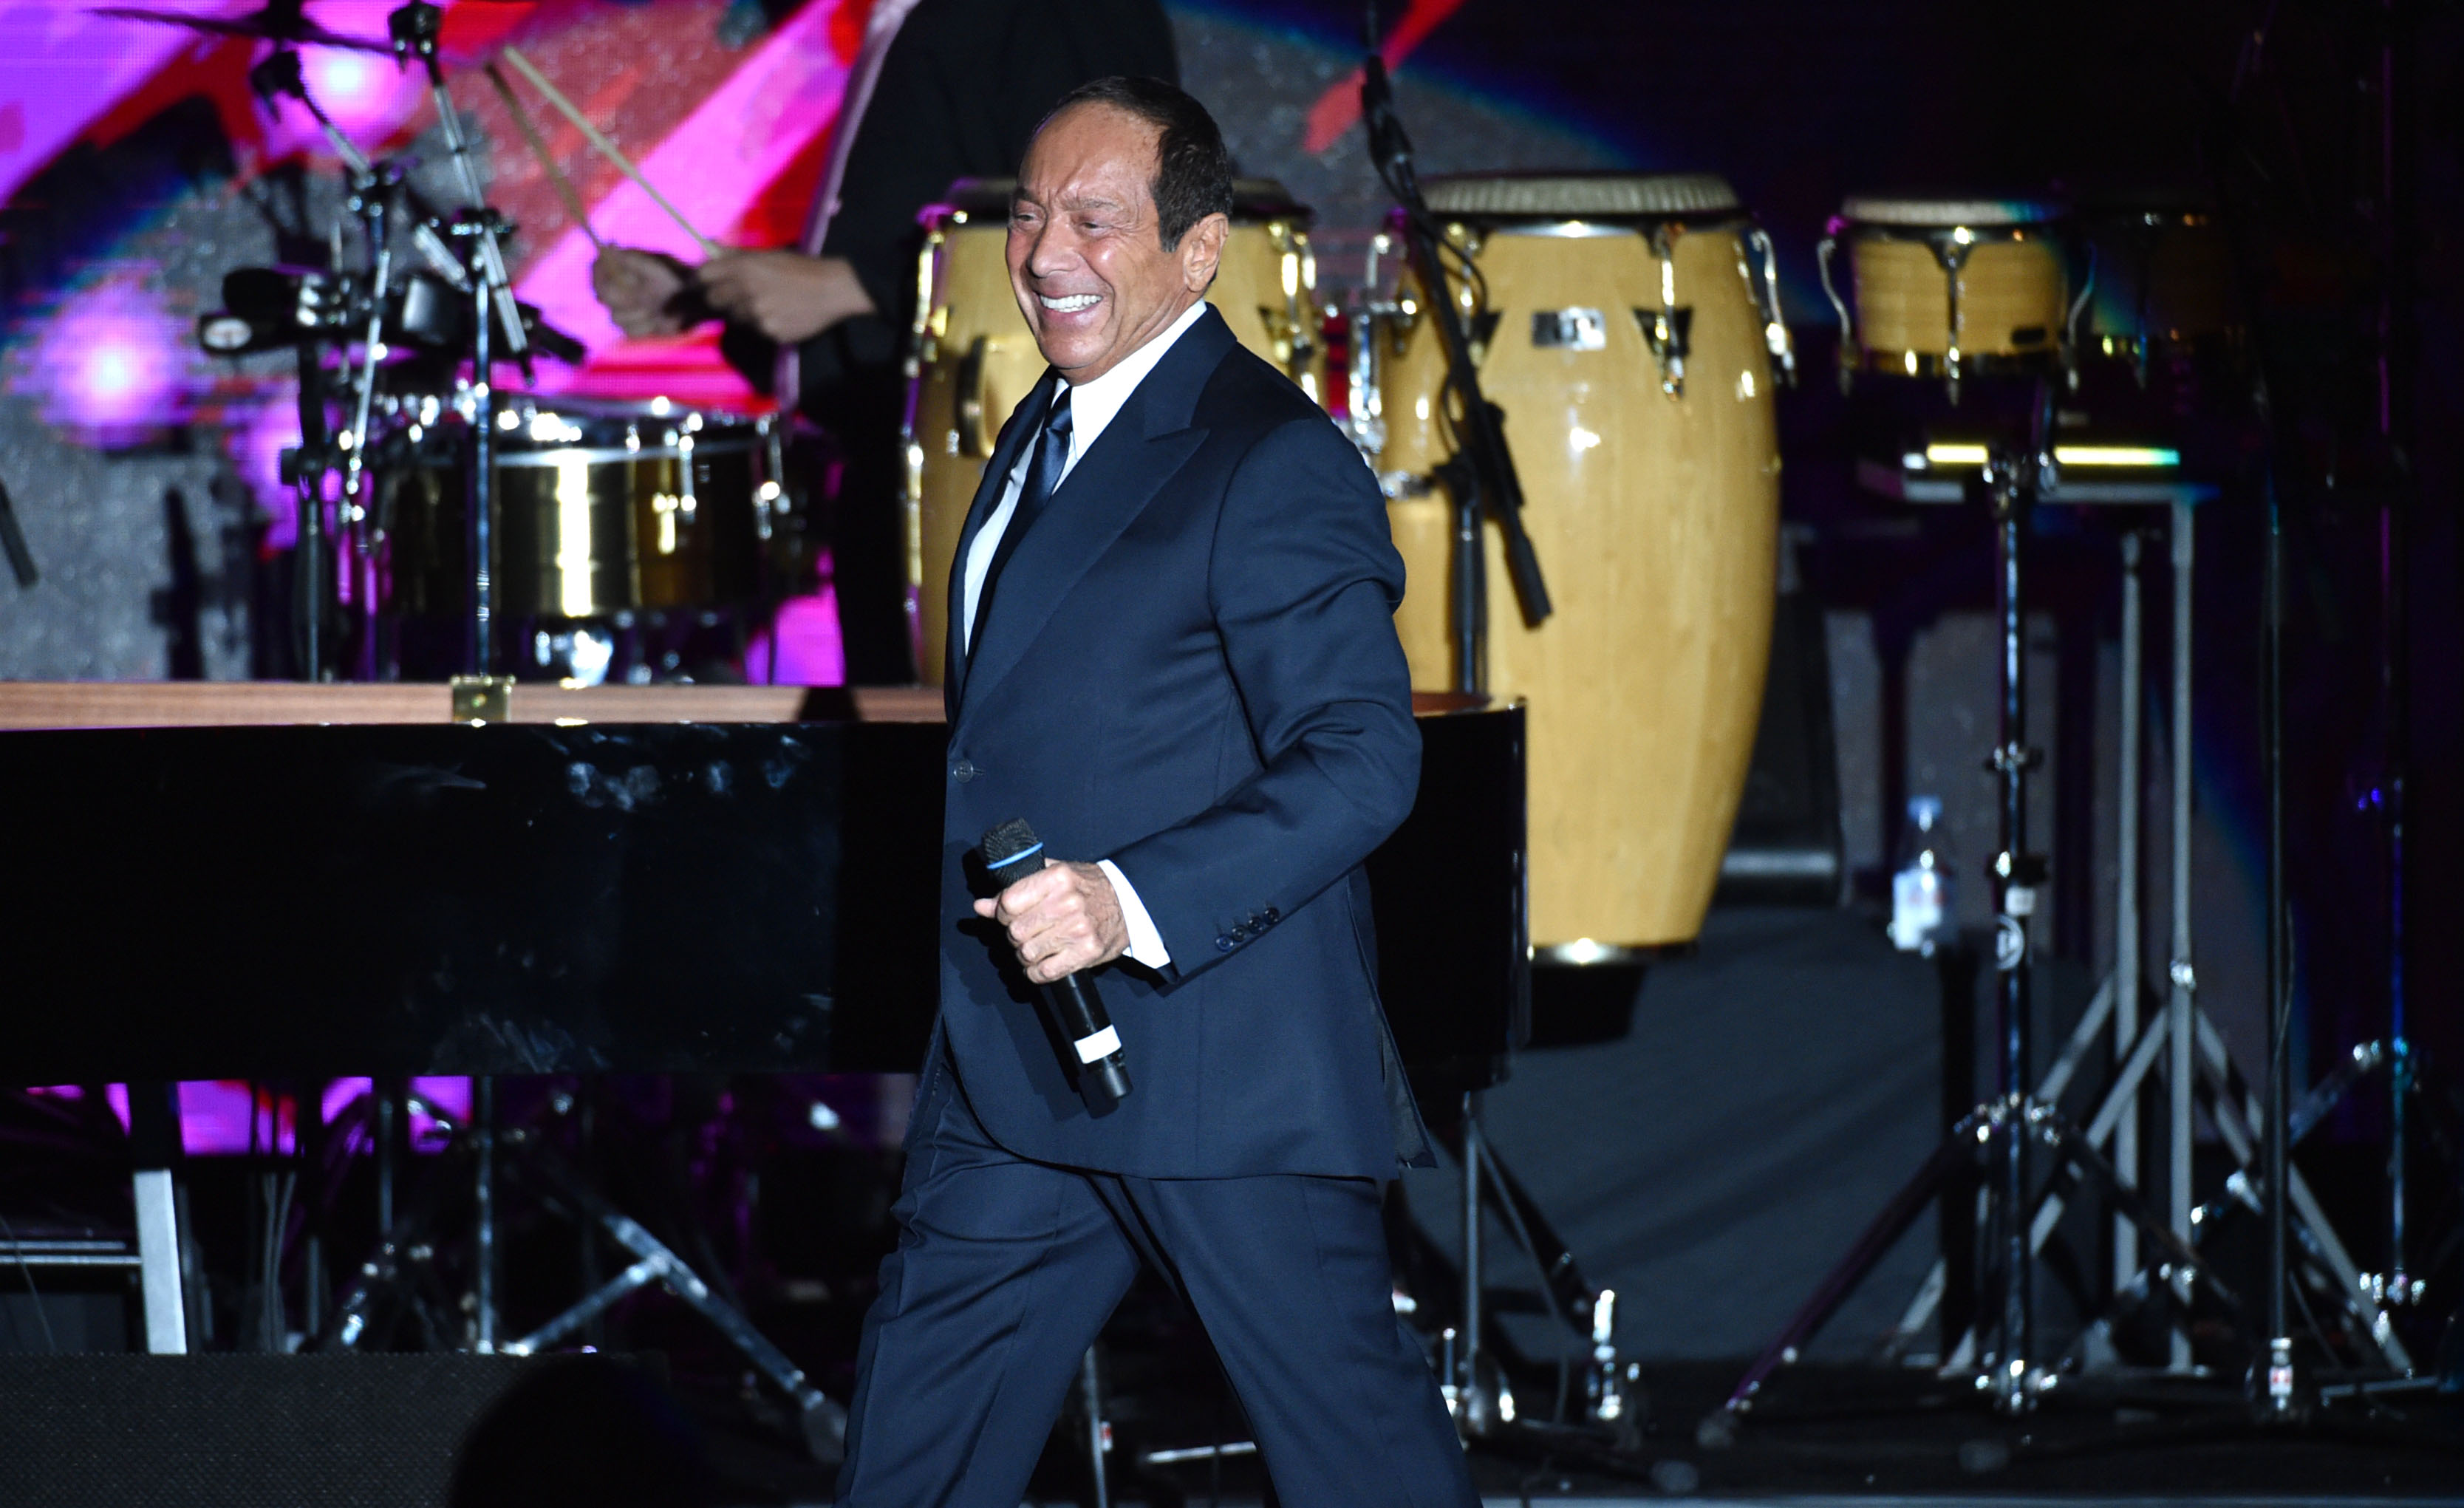 From Buddy Holly to Frank Sinatra, singer-songwriter Paul Anka hits Strathmore 'His Way'